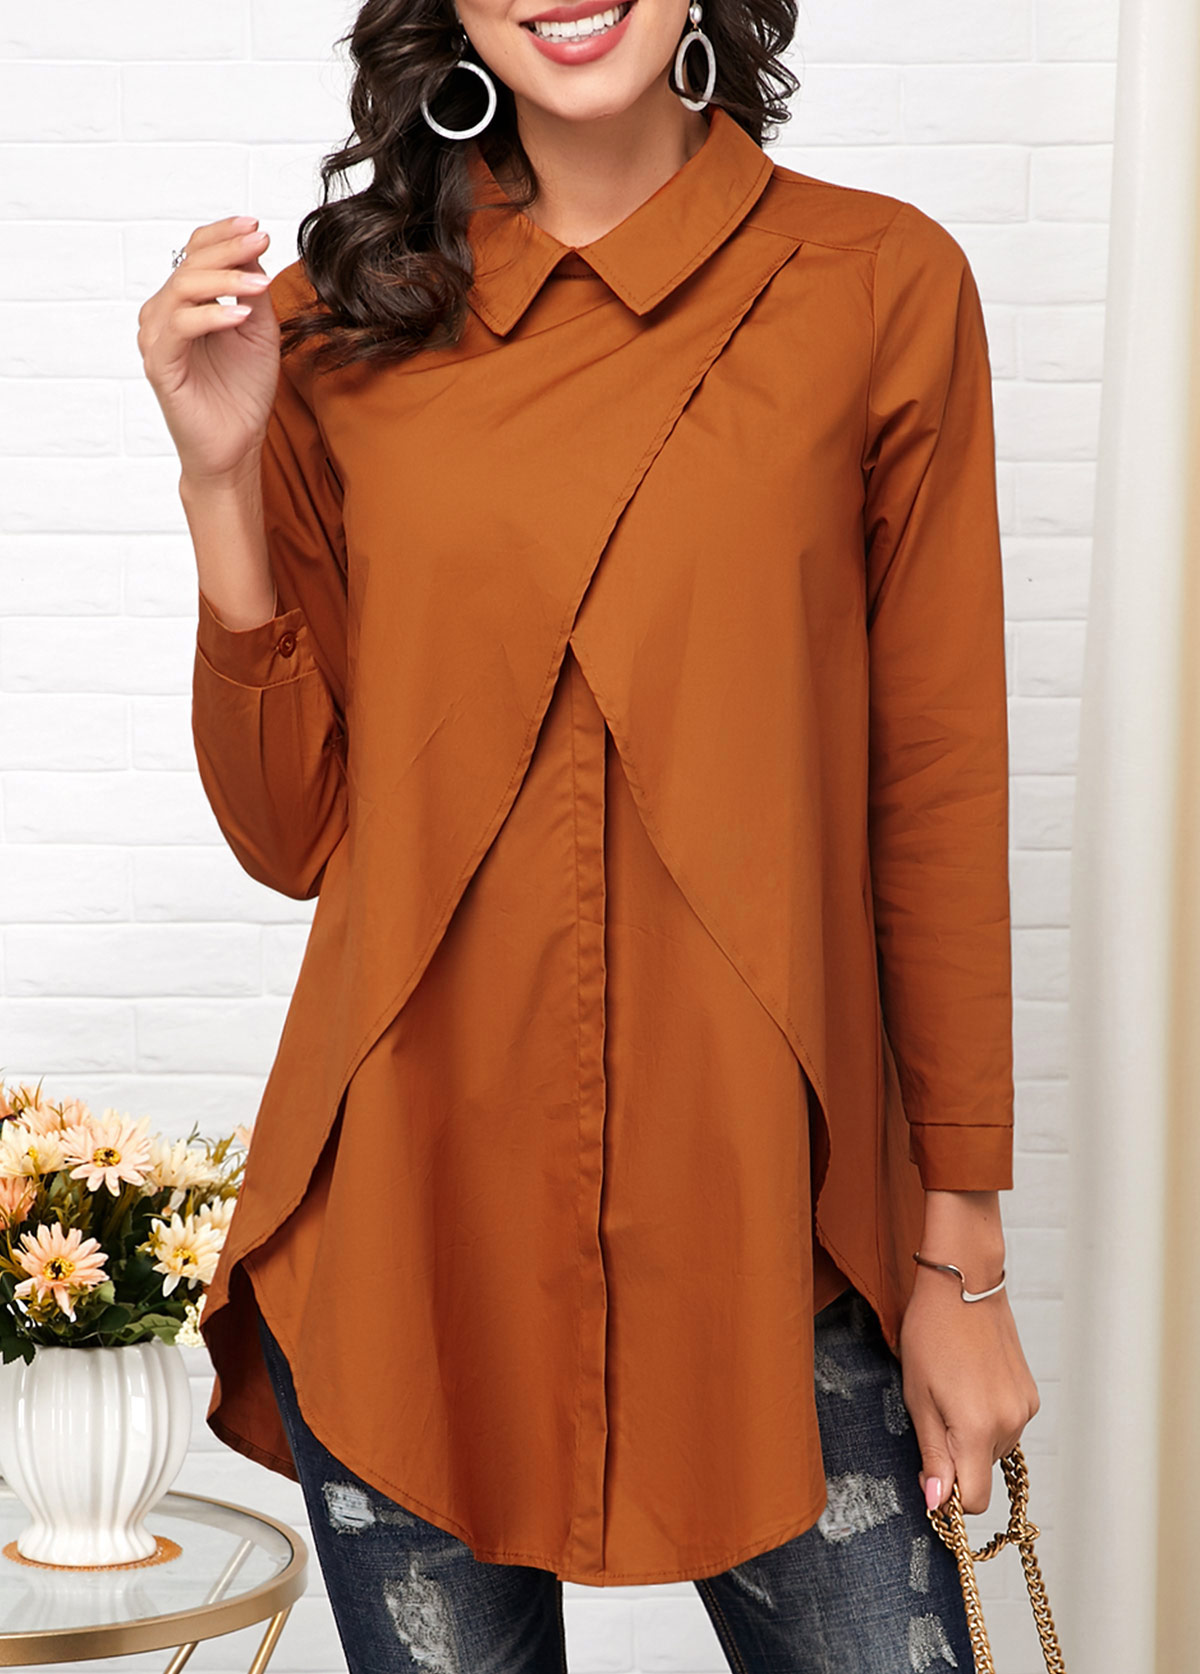 ROTITA Turndown Collar Cross Front Long Sleeve Blouse